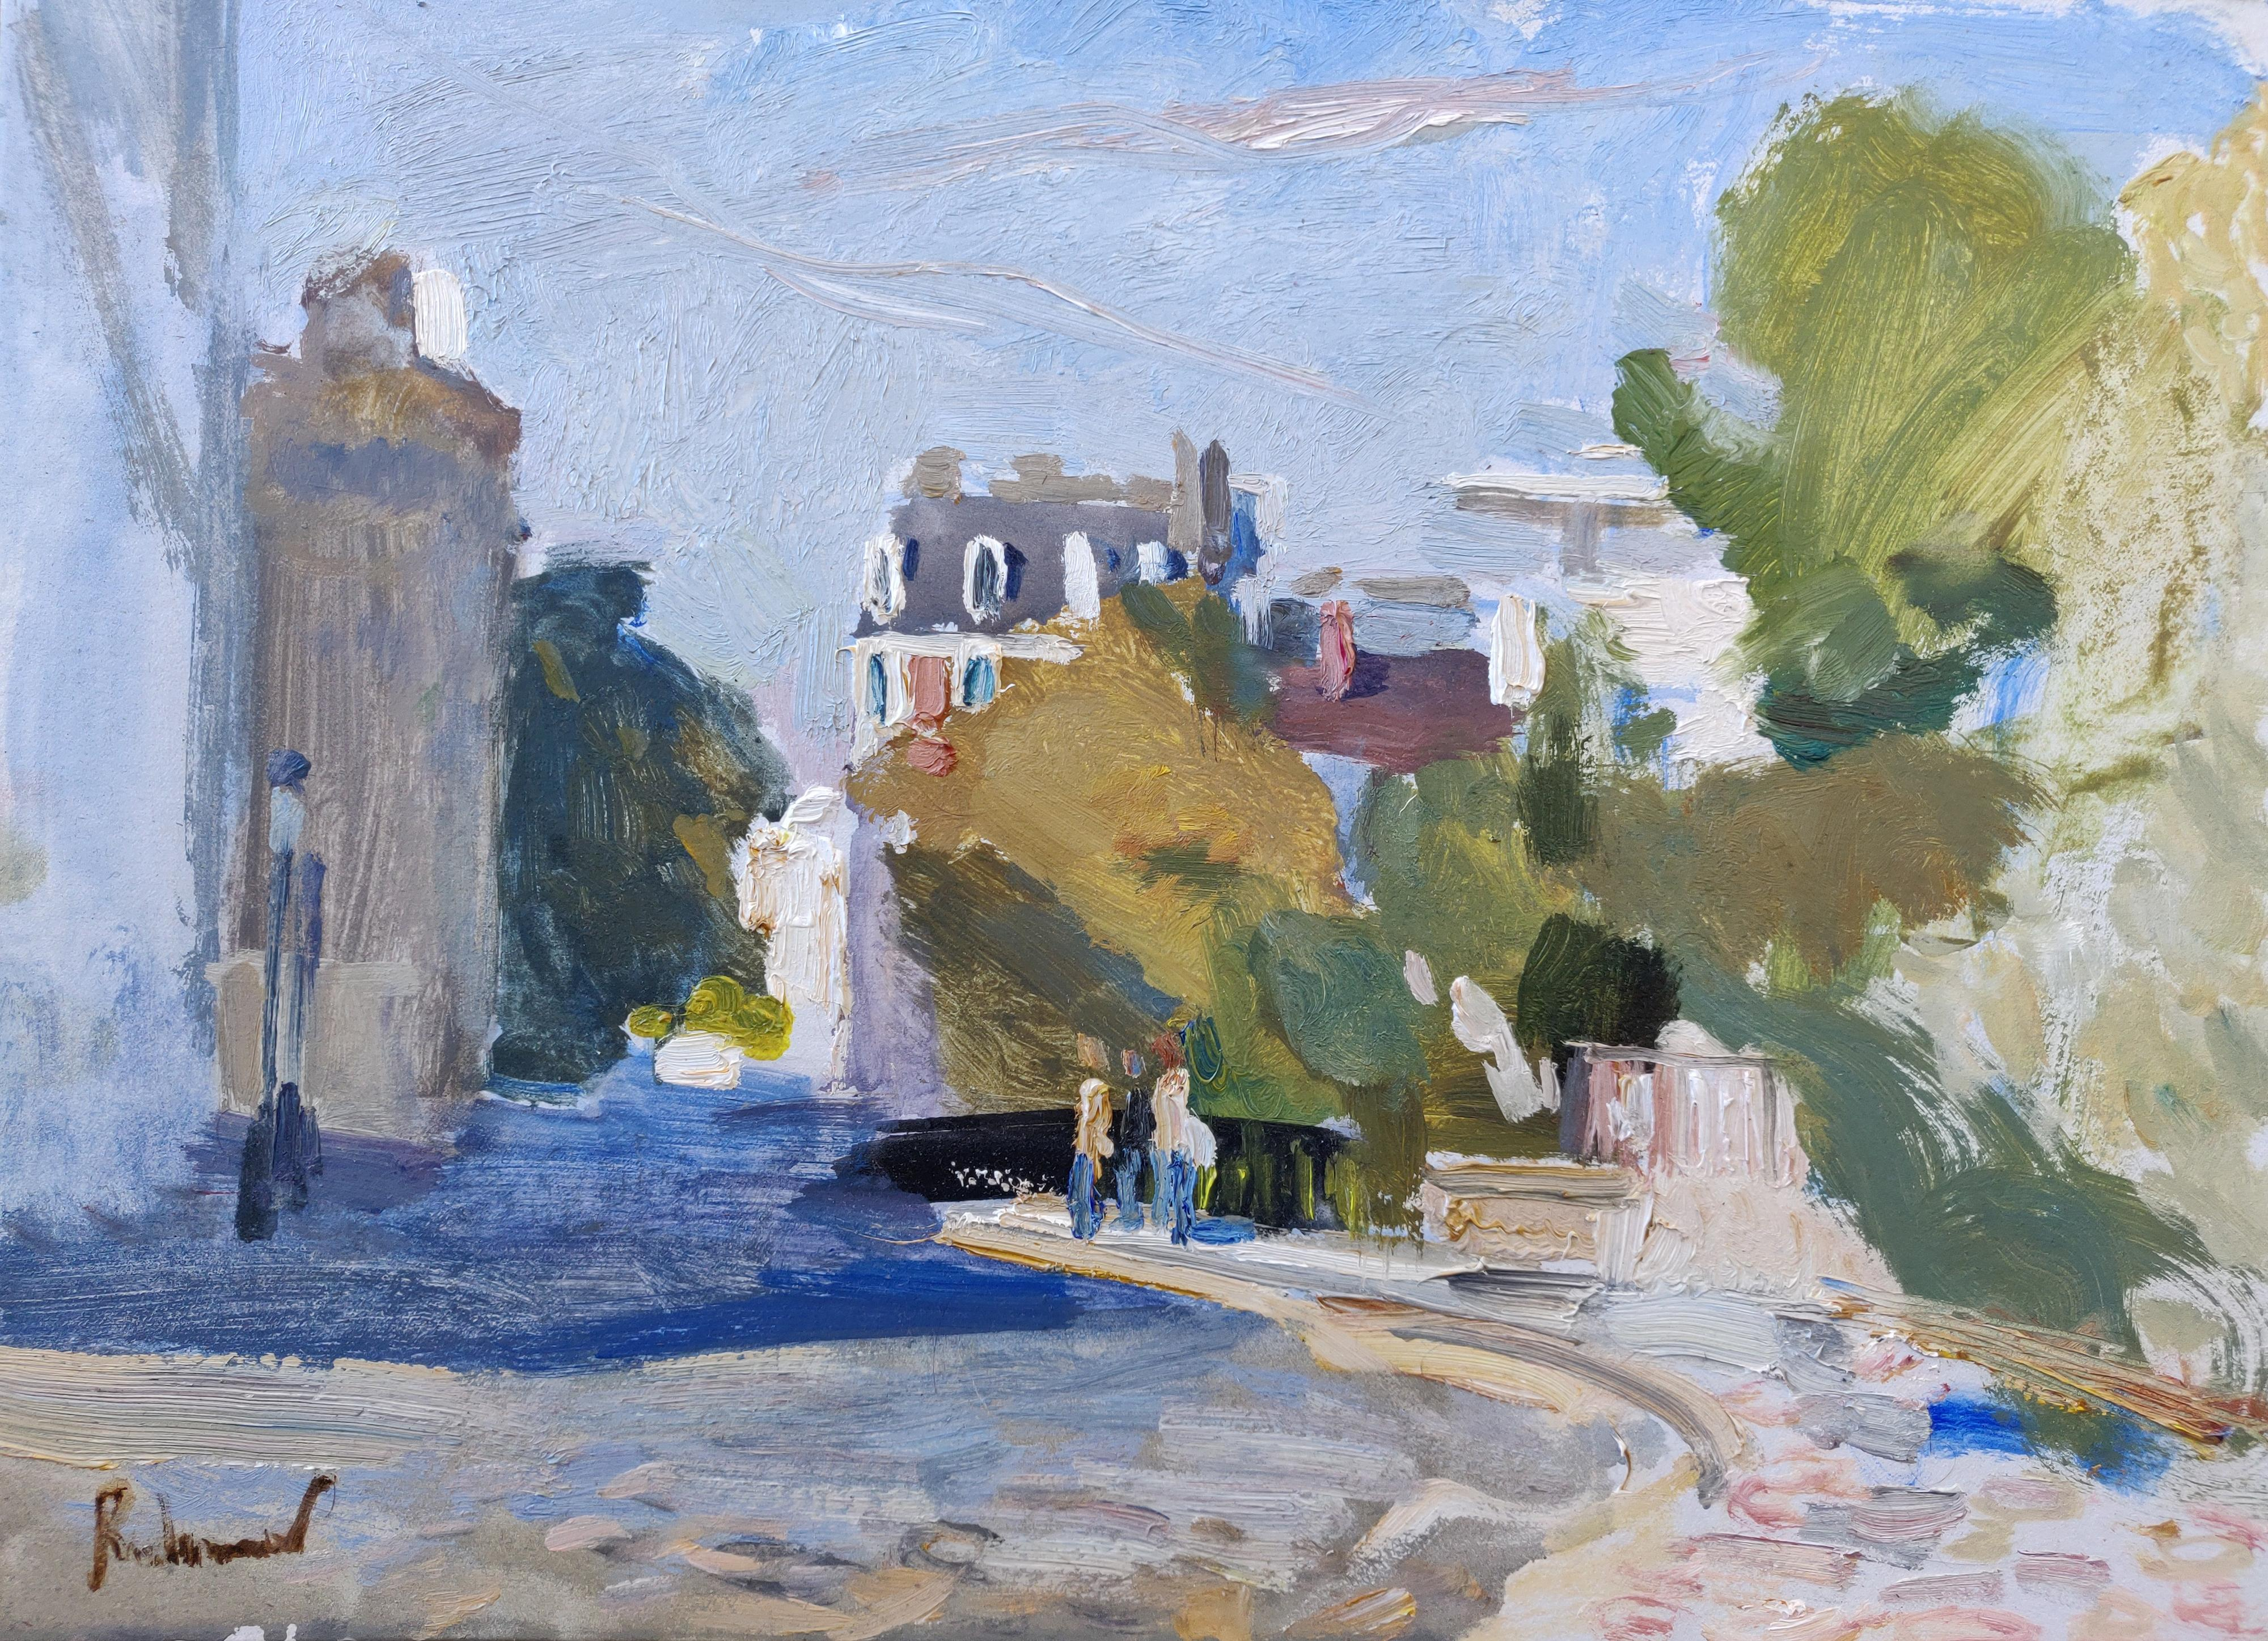 A Street In Montmartre - 21st Century Contemporary Paris Urban Oil Painting